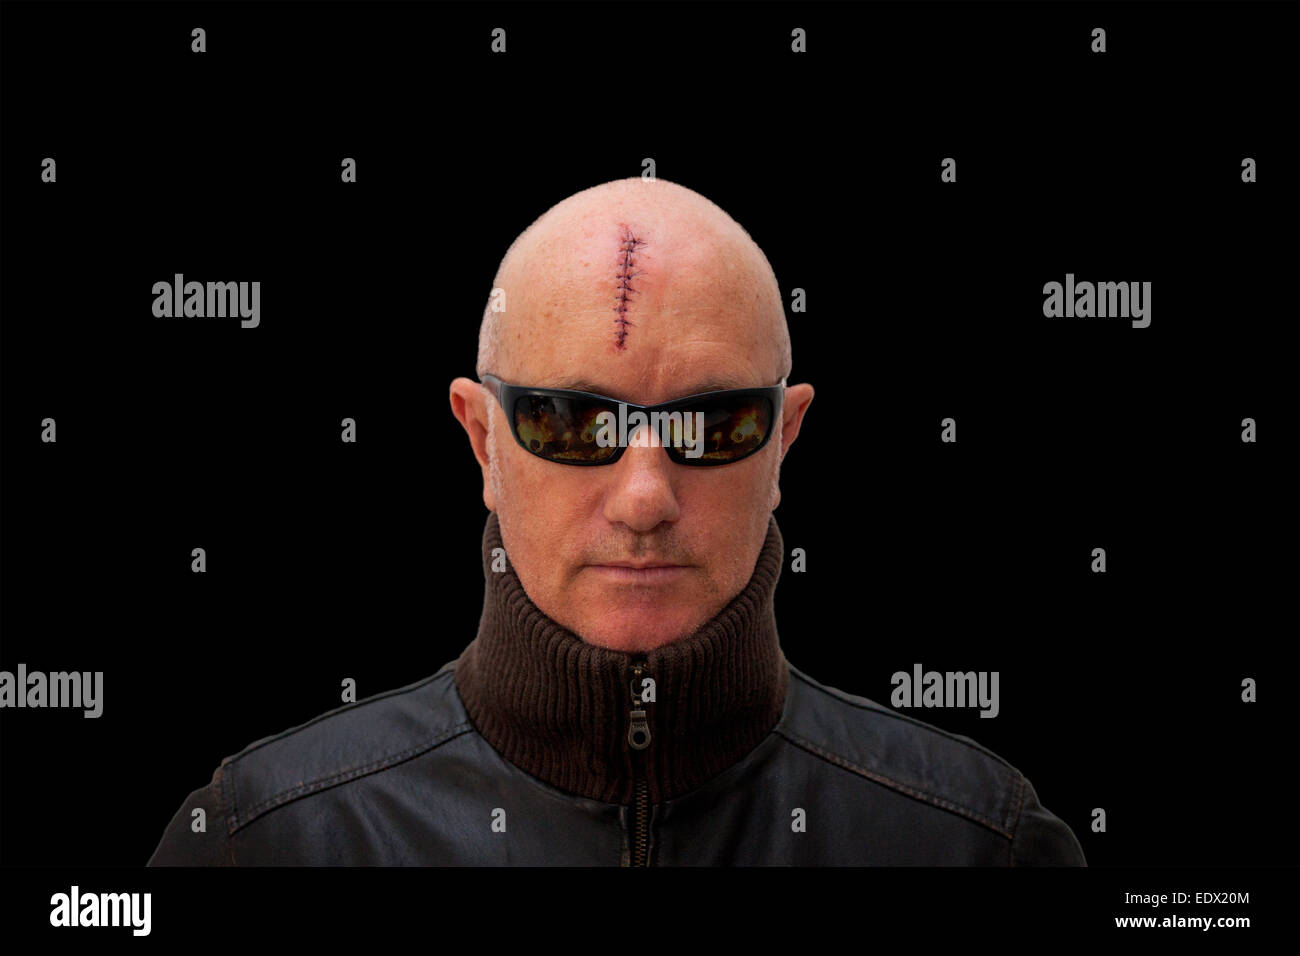 laceration stock photos laceration stock images alamy evil looking man wearing sun glasses a serious head injury looking straight at the camera